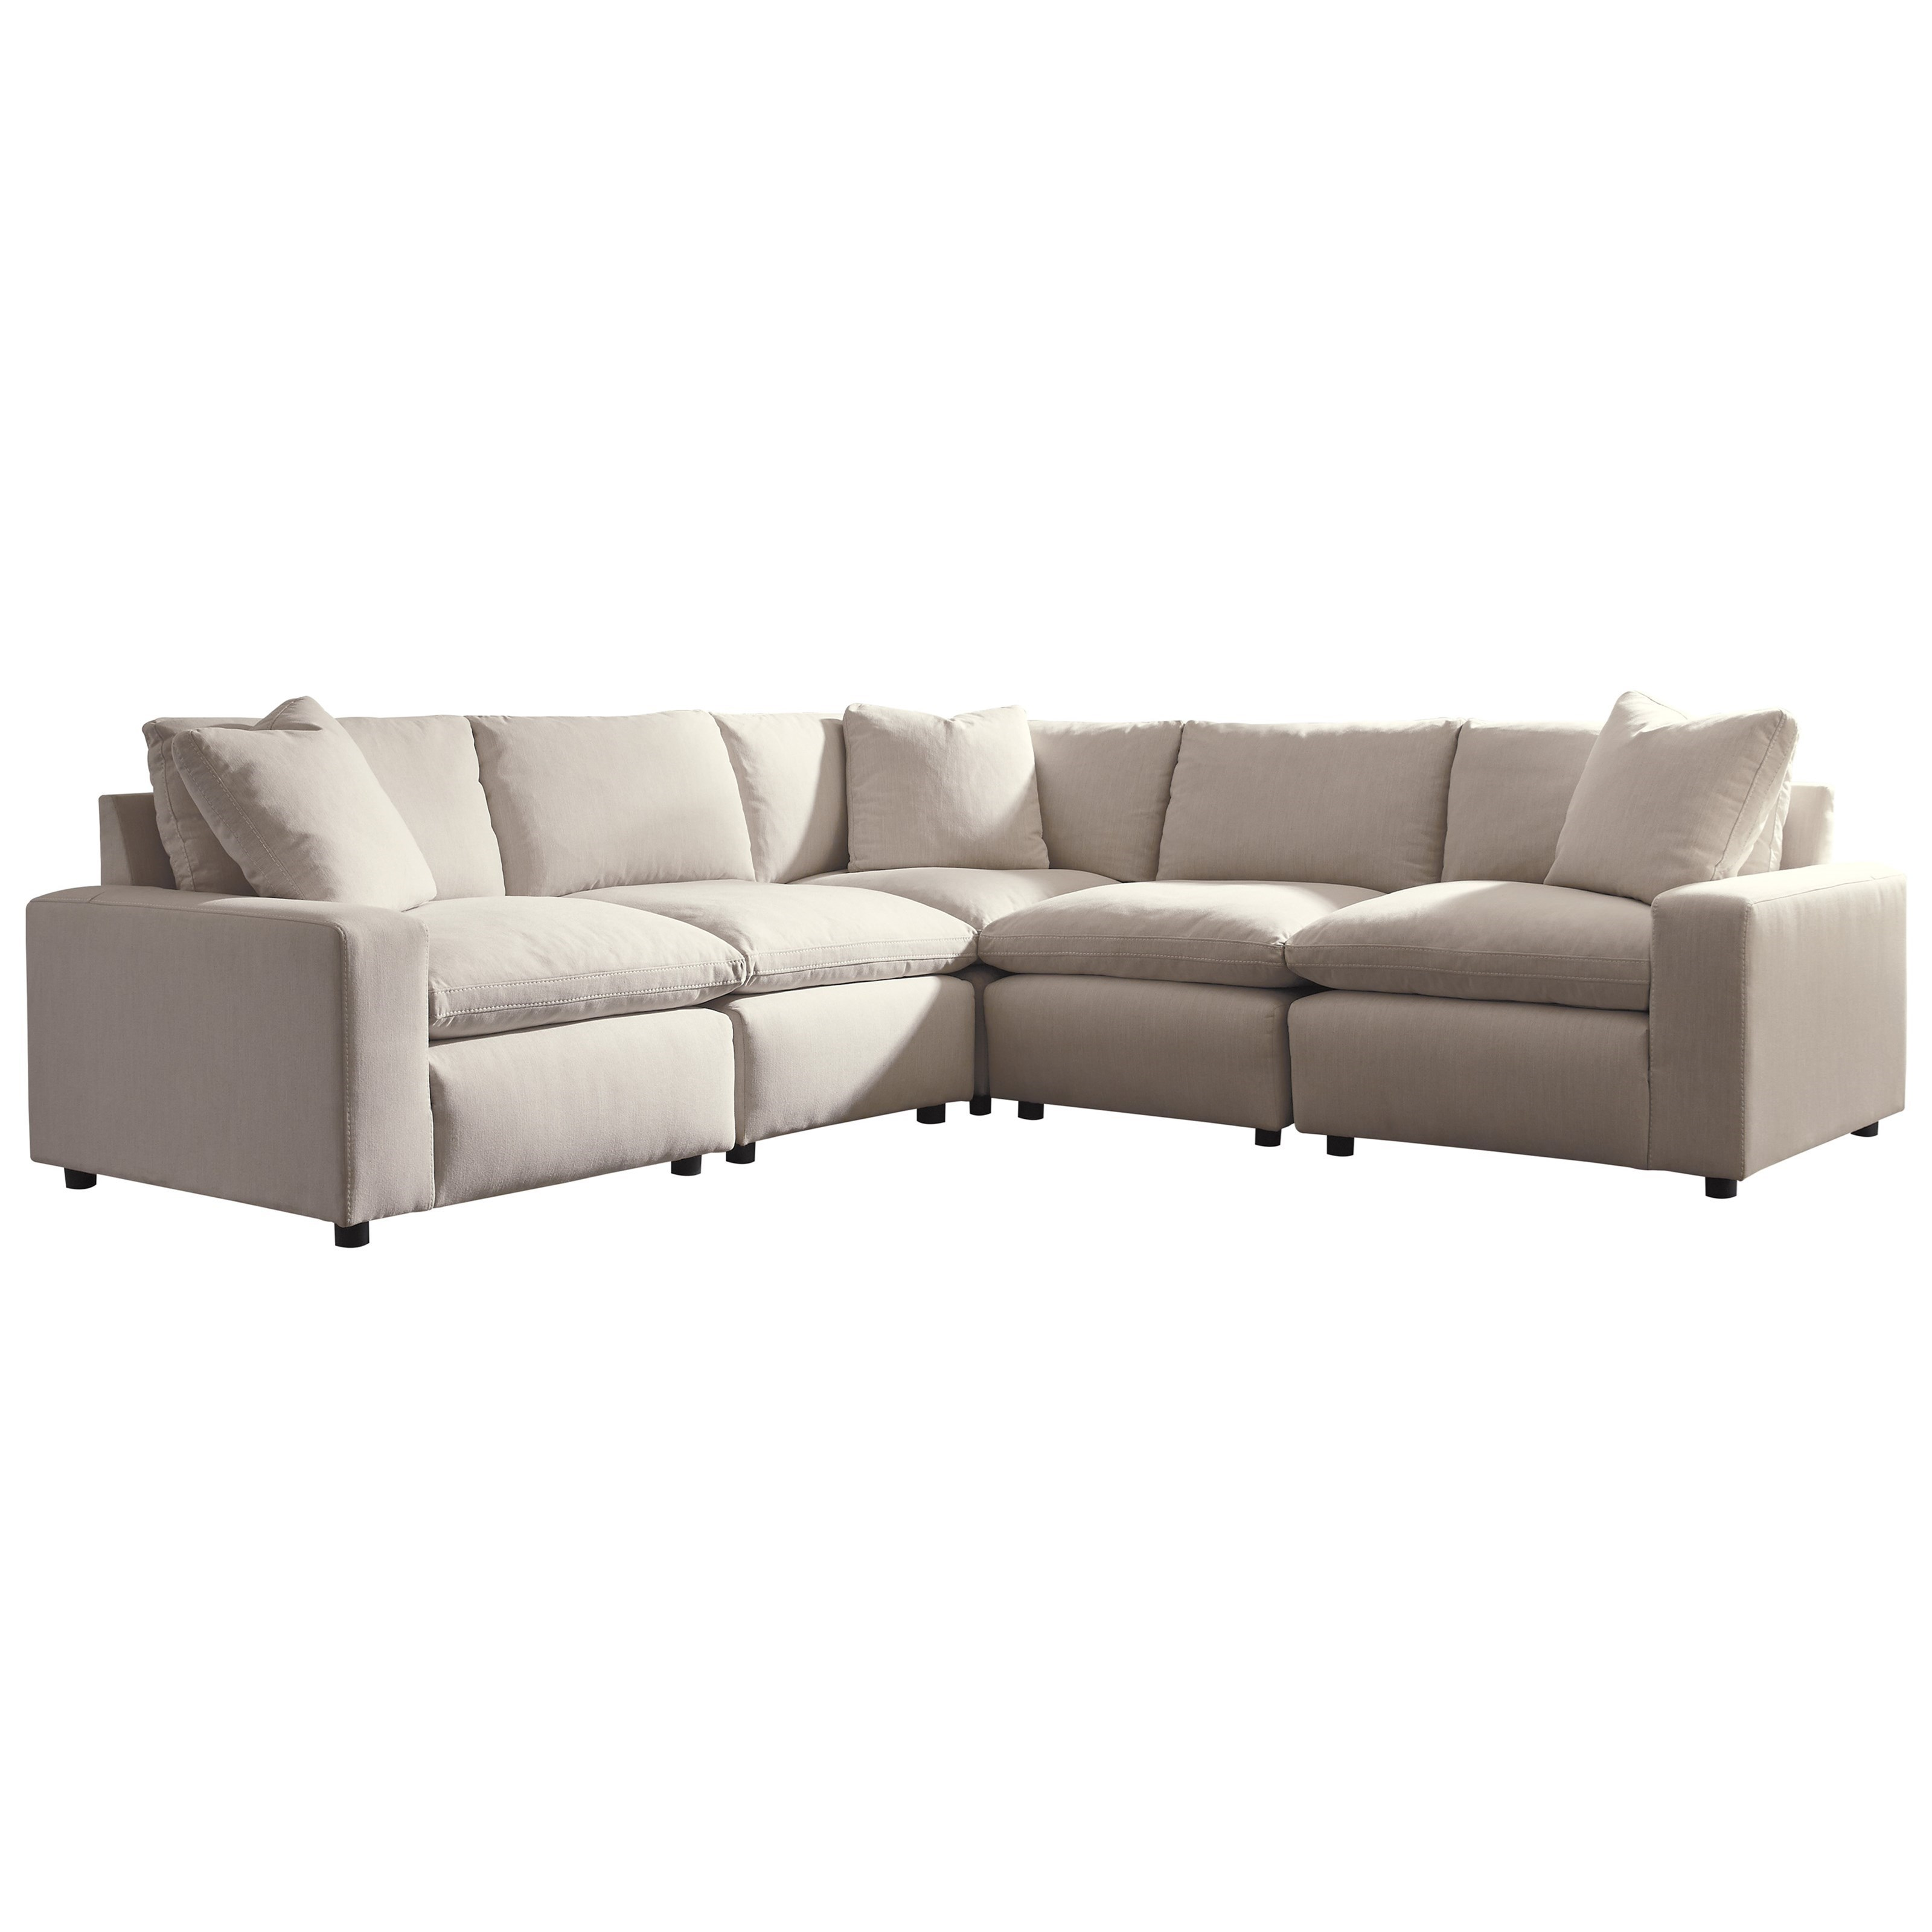 Savesto 5-Piece Sectional by Signature Design by Ashley at HomeWorld Furniture